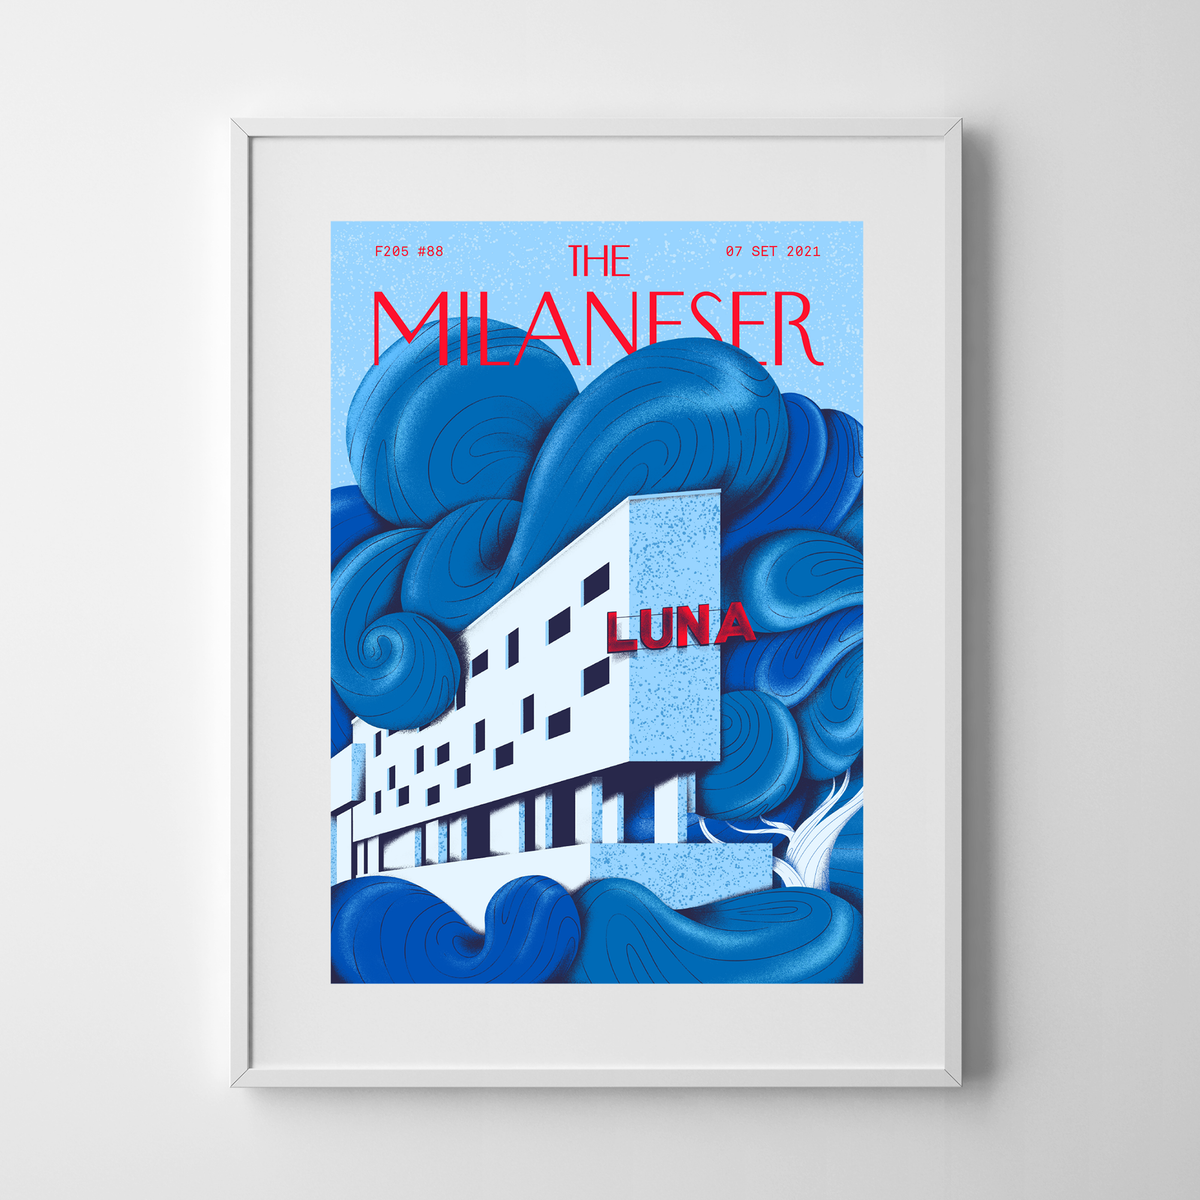 Image of The Milaneser #88